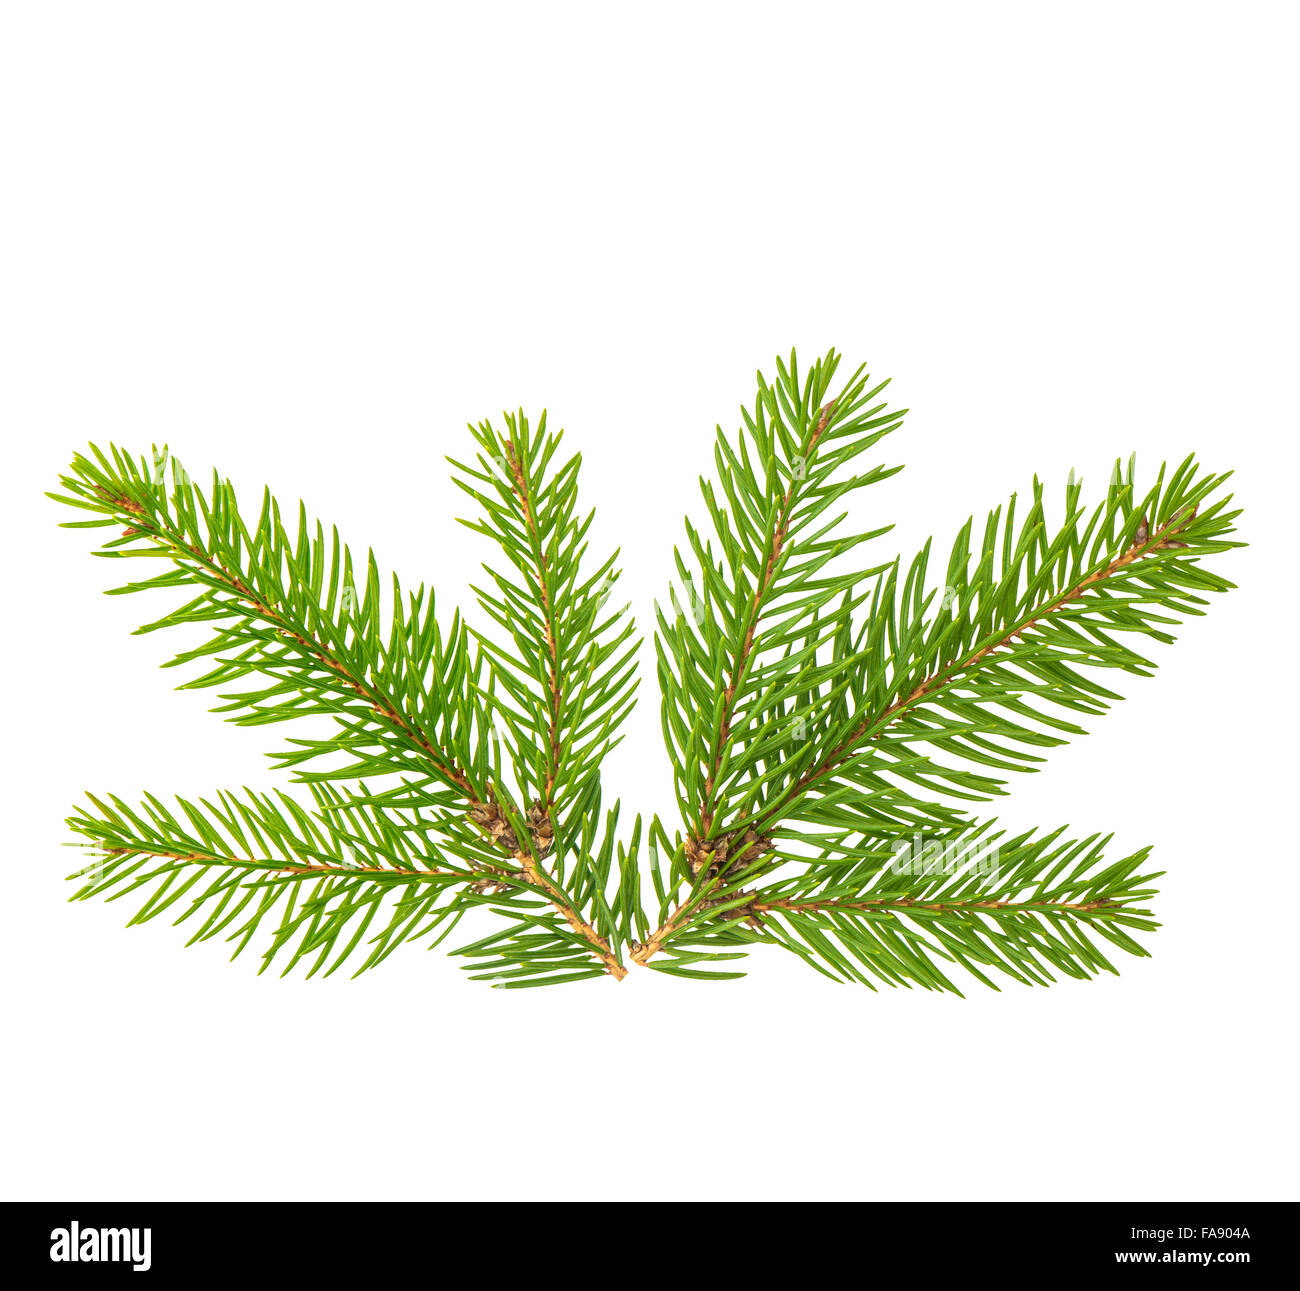 Spruce branches isolated on white background. Evergreen plant - Stock Image